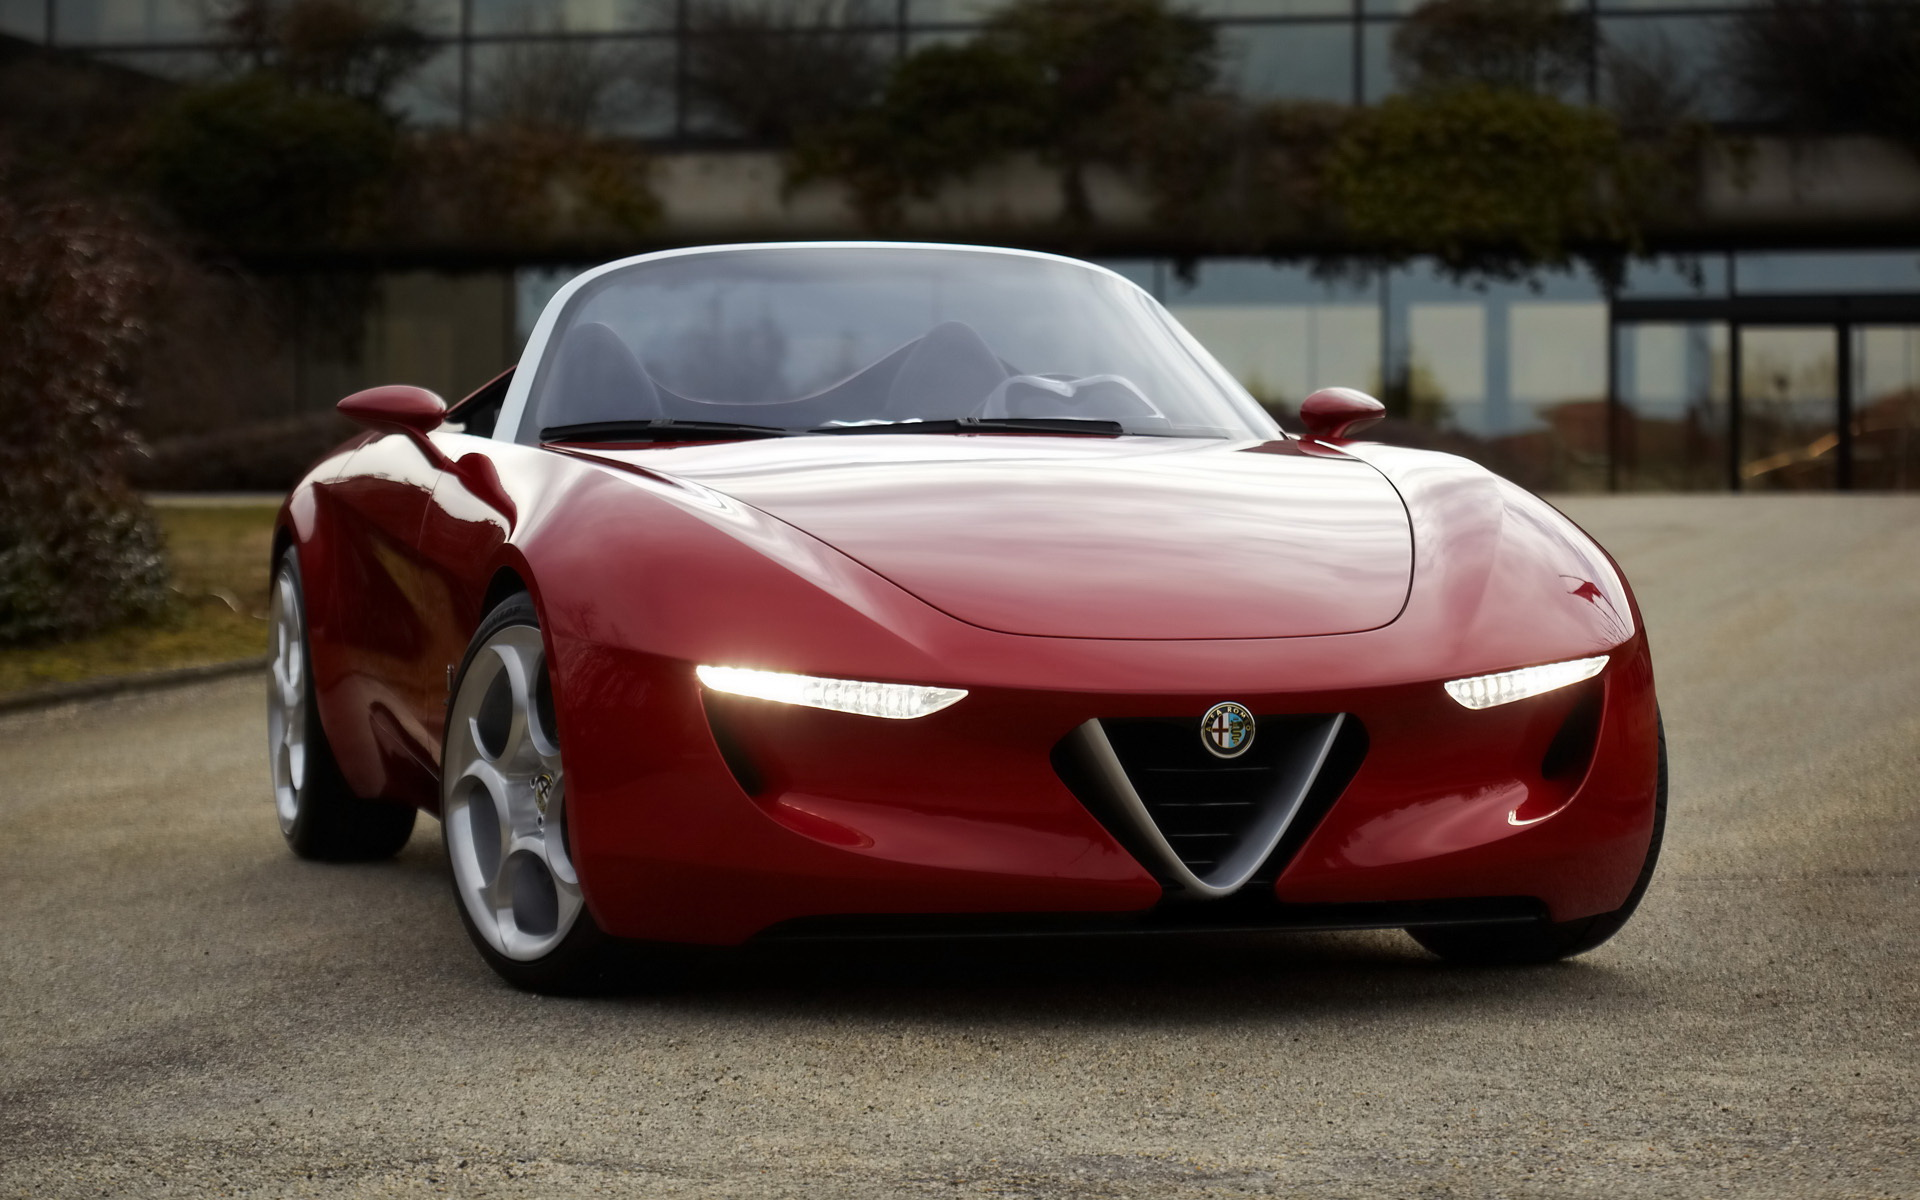 Alfa Romeo Super Car Wallpapers | HD Wallpapers